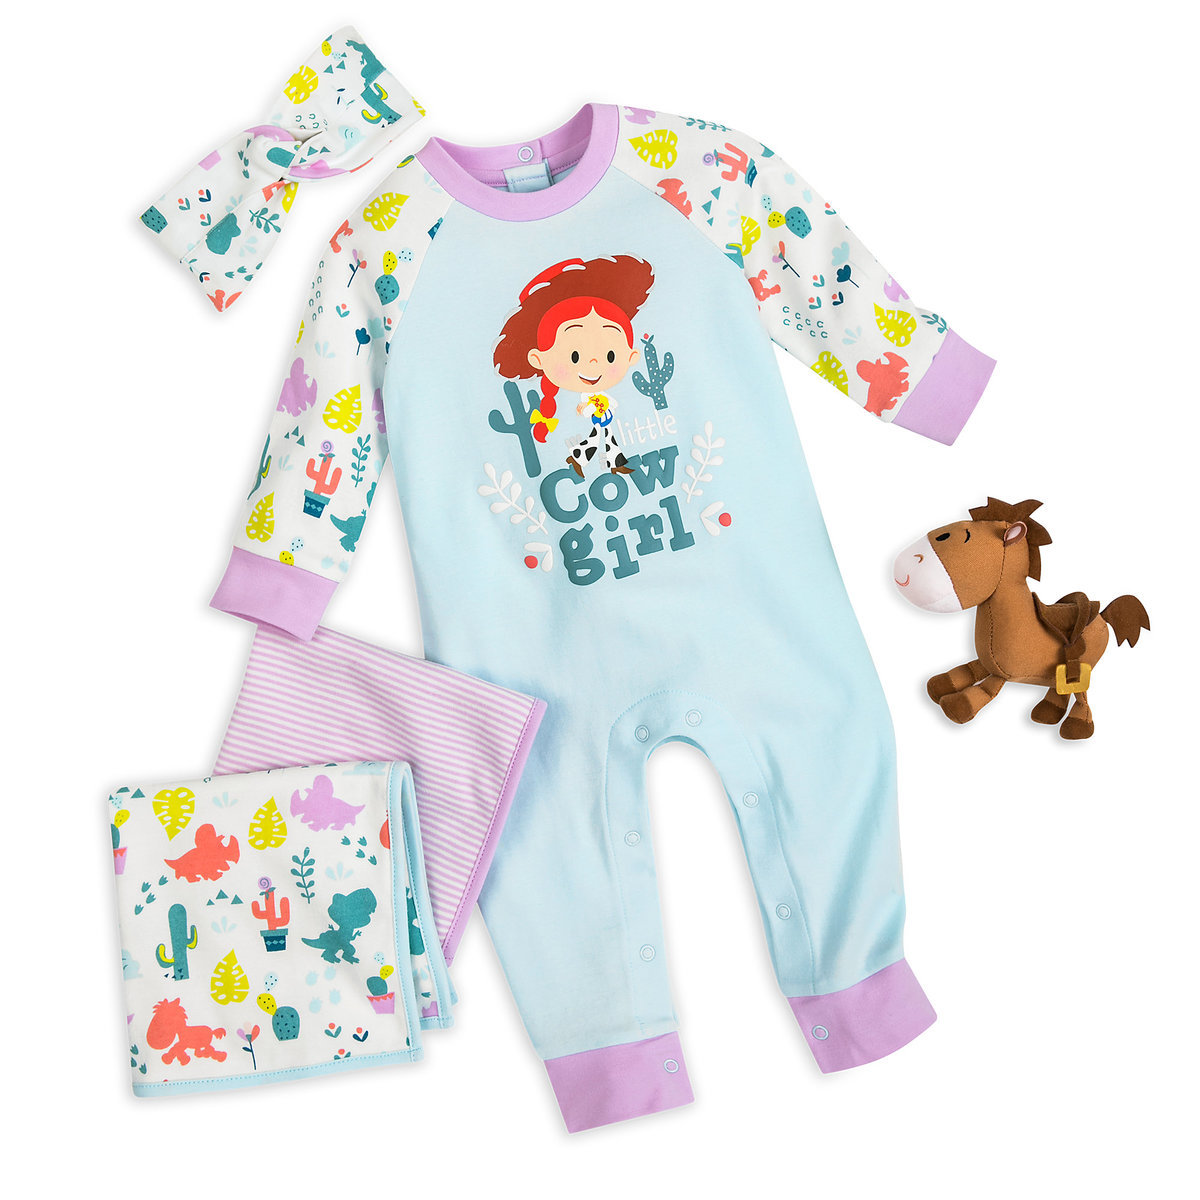 Top 25 Disney Gift Ideas for Babies featured by top US Disney blogger, Marcie and the Mouse: https://lumiere-a.akamaihd.net/v1/images/file_a75872c8.jpeg?width=1200&region=0%2C0%2C2000%2C2000